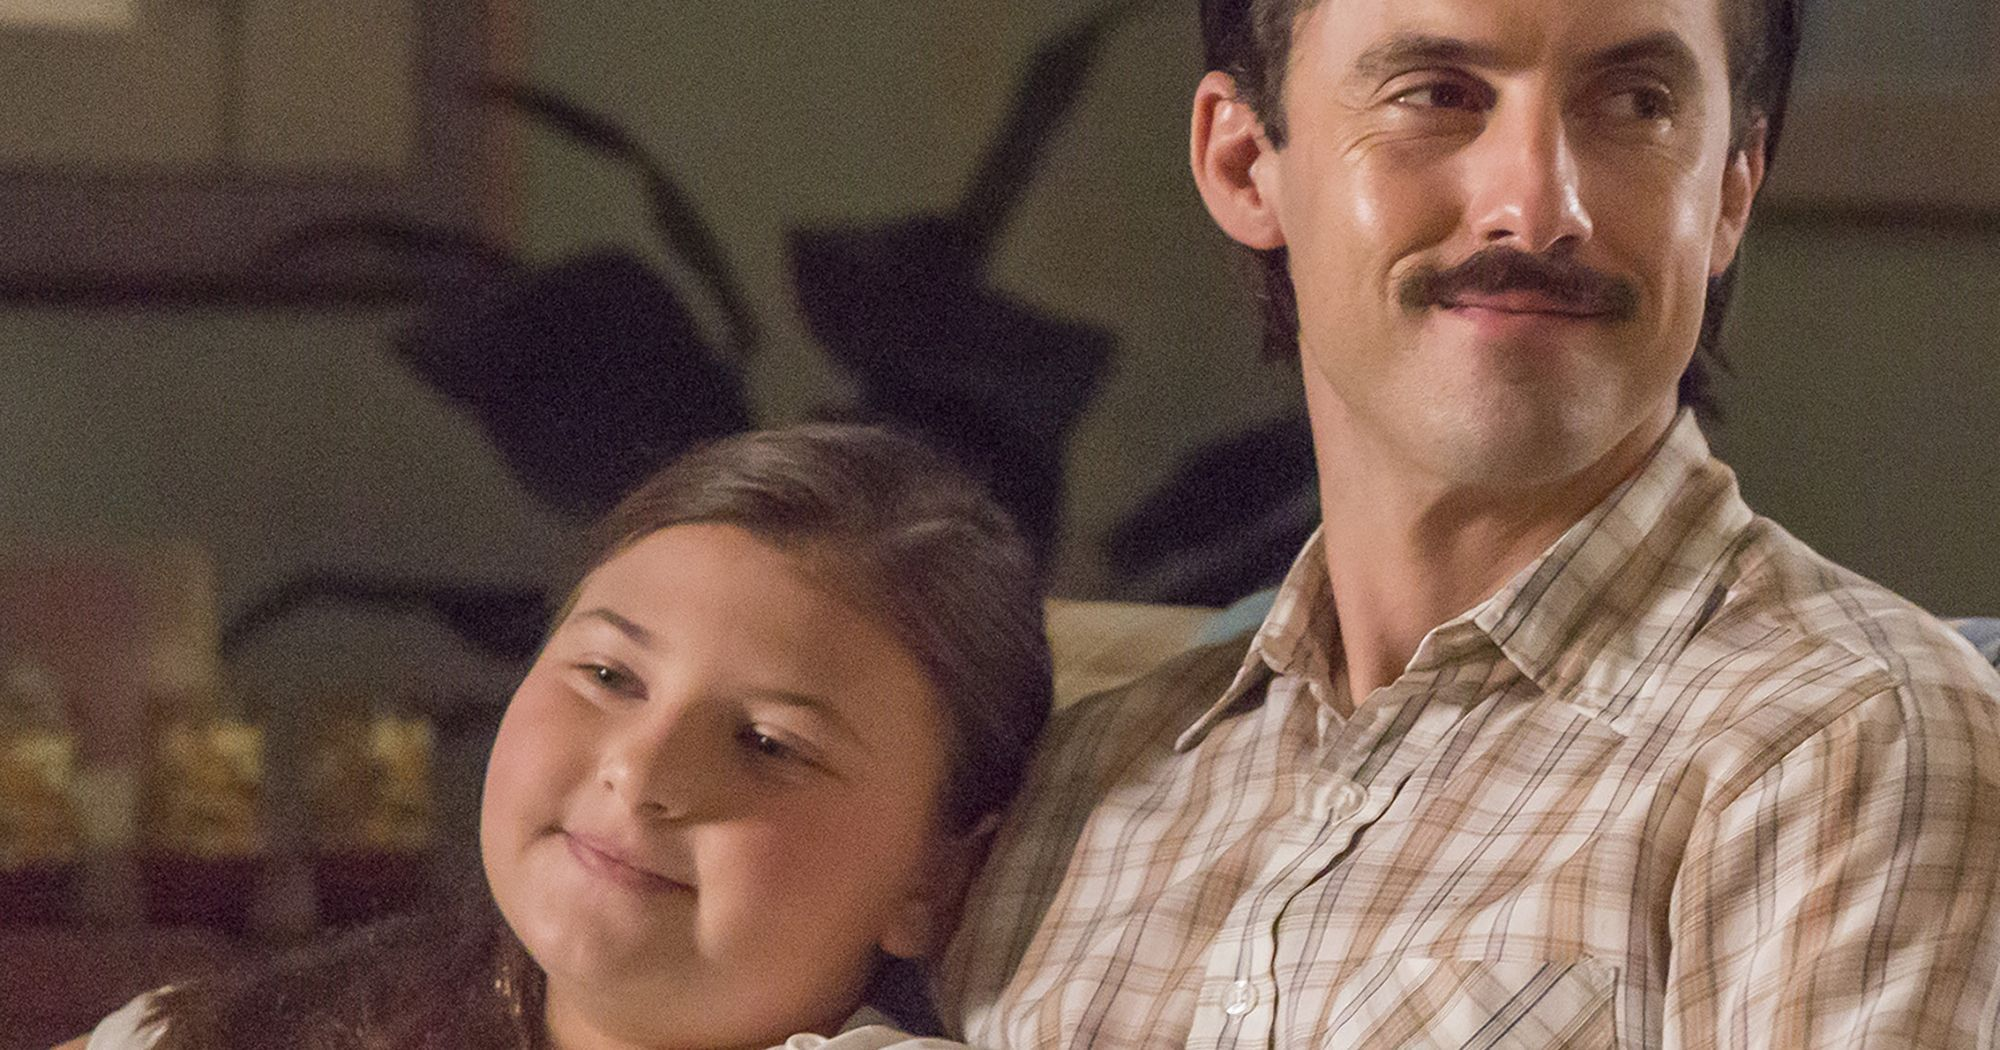 """A New """"This Is Us"""" Fan Theory Makes Jack's Death Particularly Tragic For Kate  http://www.refinery29.com/2017/02/142014/this-is-us-kate-jack-death-theory?utm_source=feed&utm_medium=rss"""